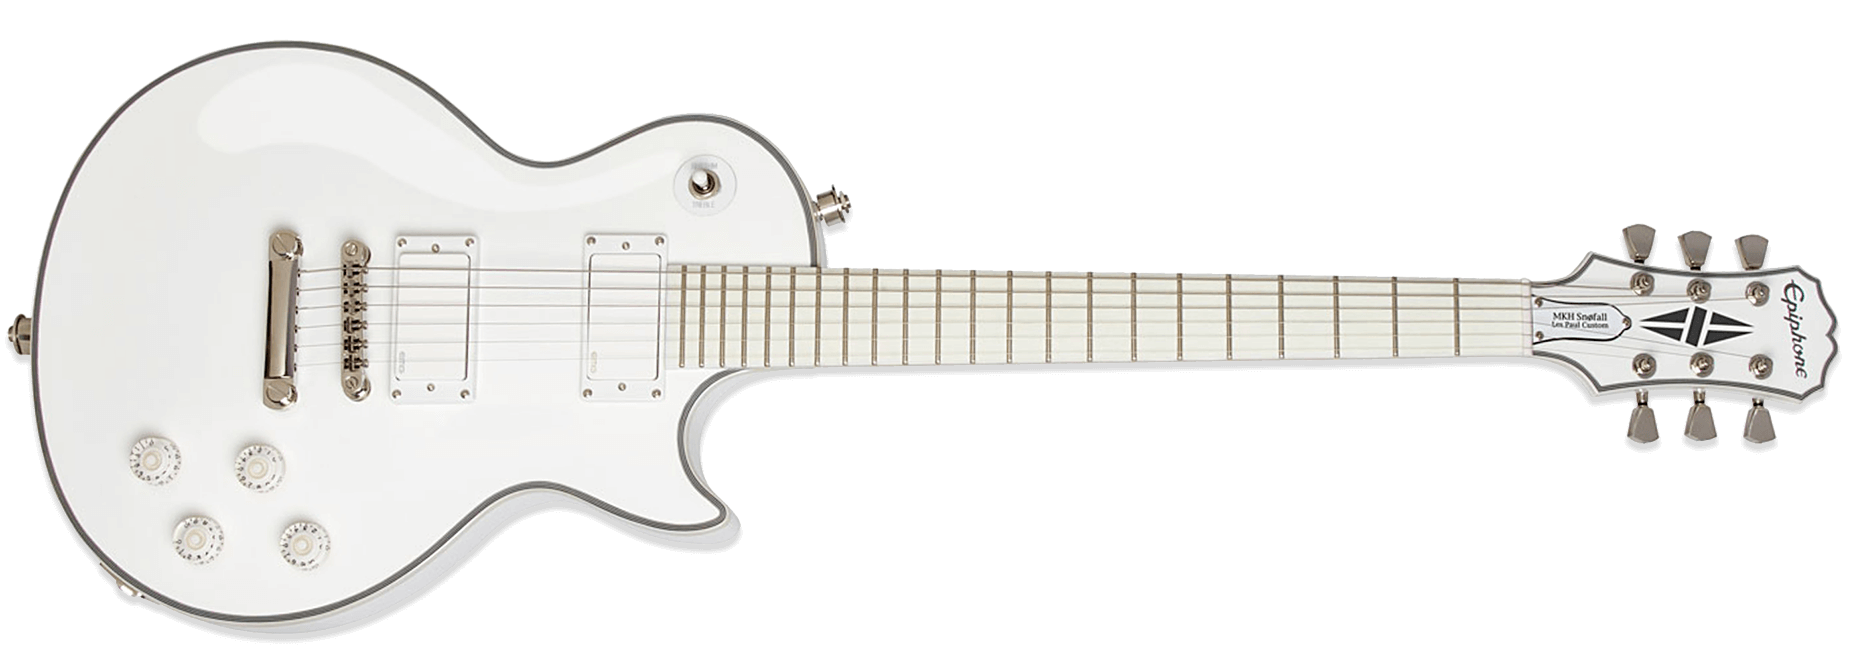 Epiphone Matt Heafy Snofall Les Paul Custom 6 Alpine White